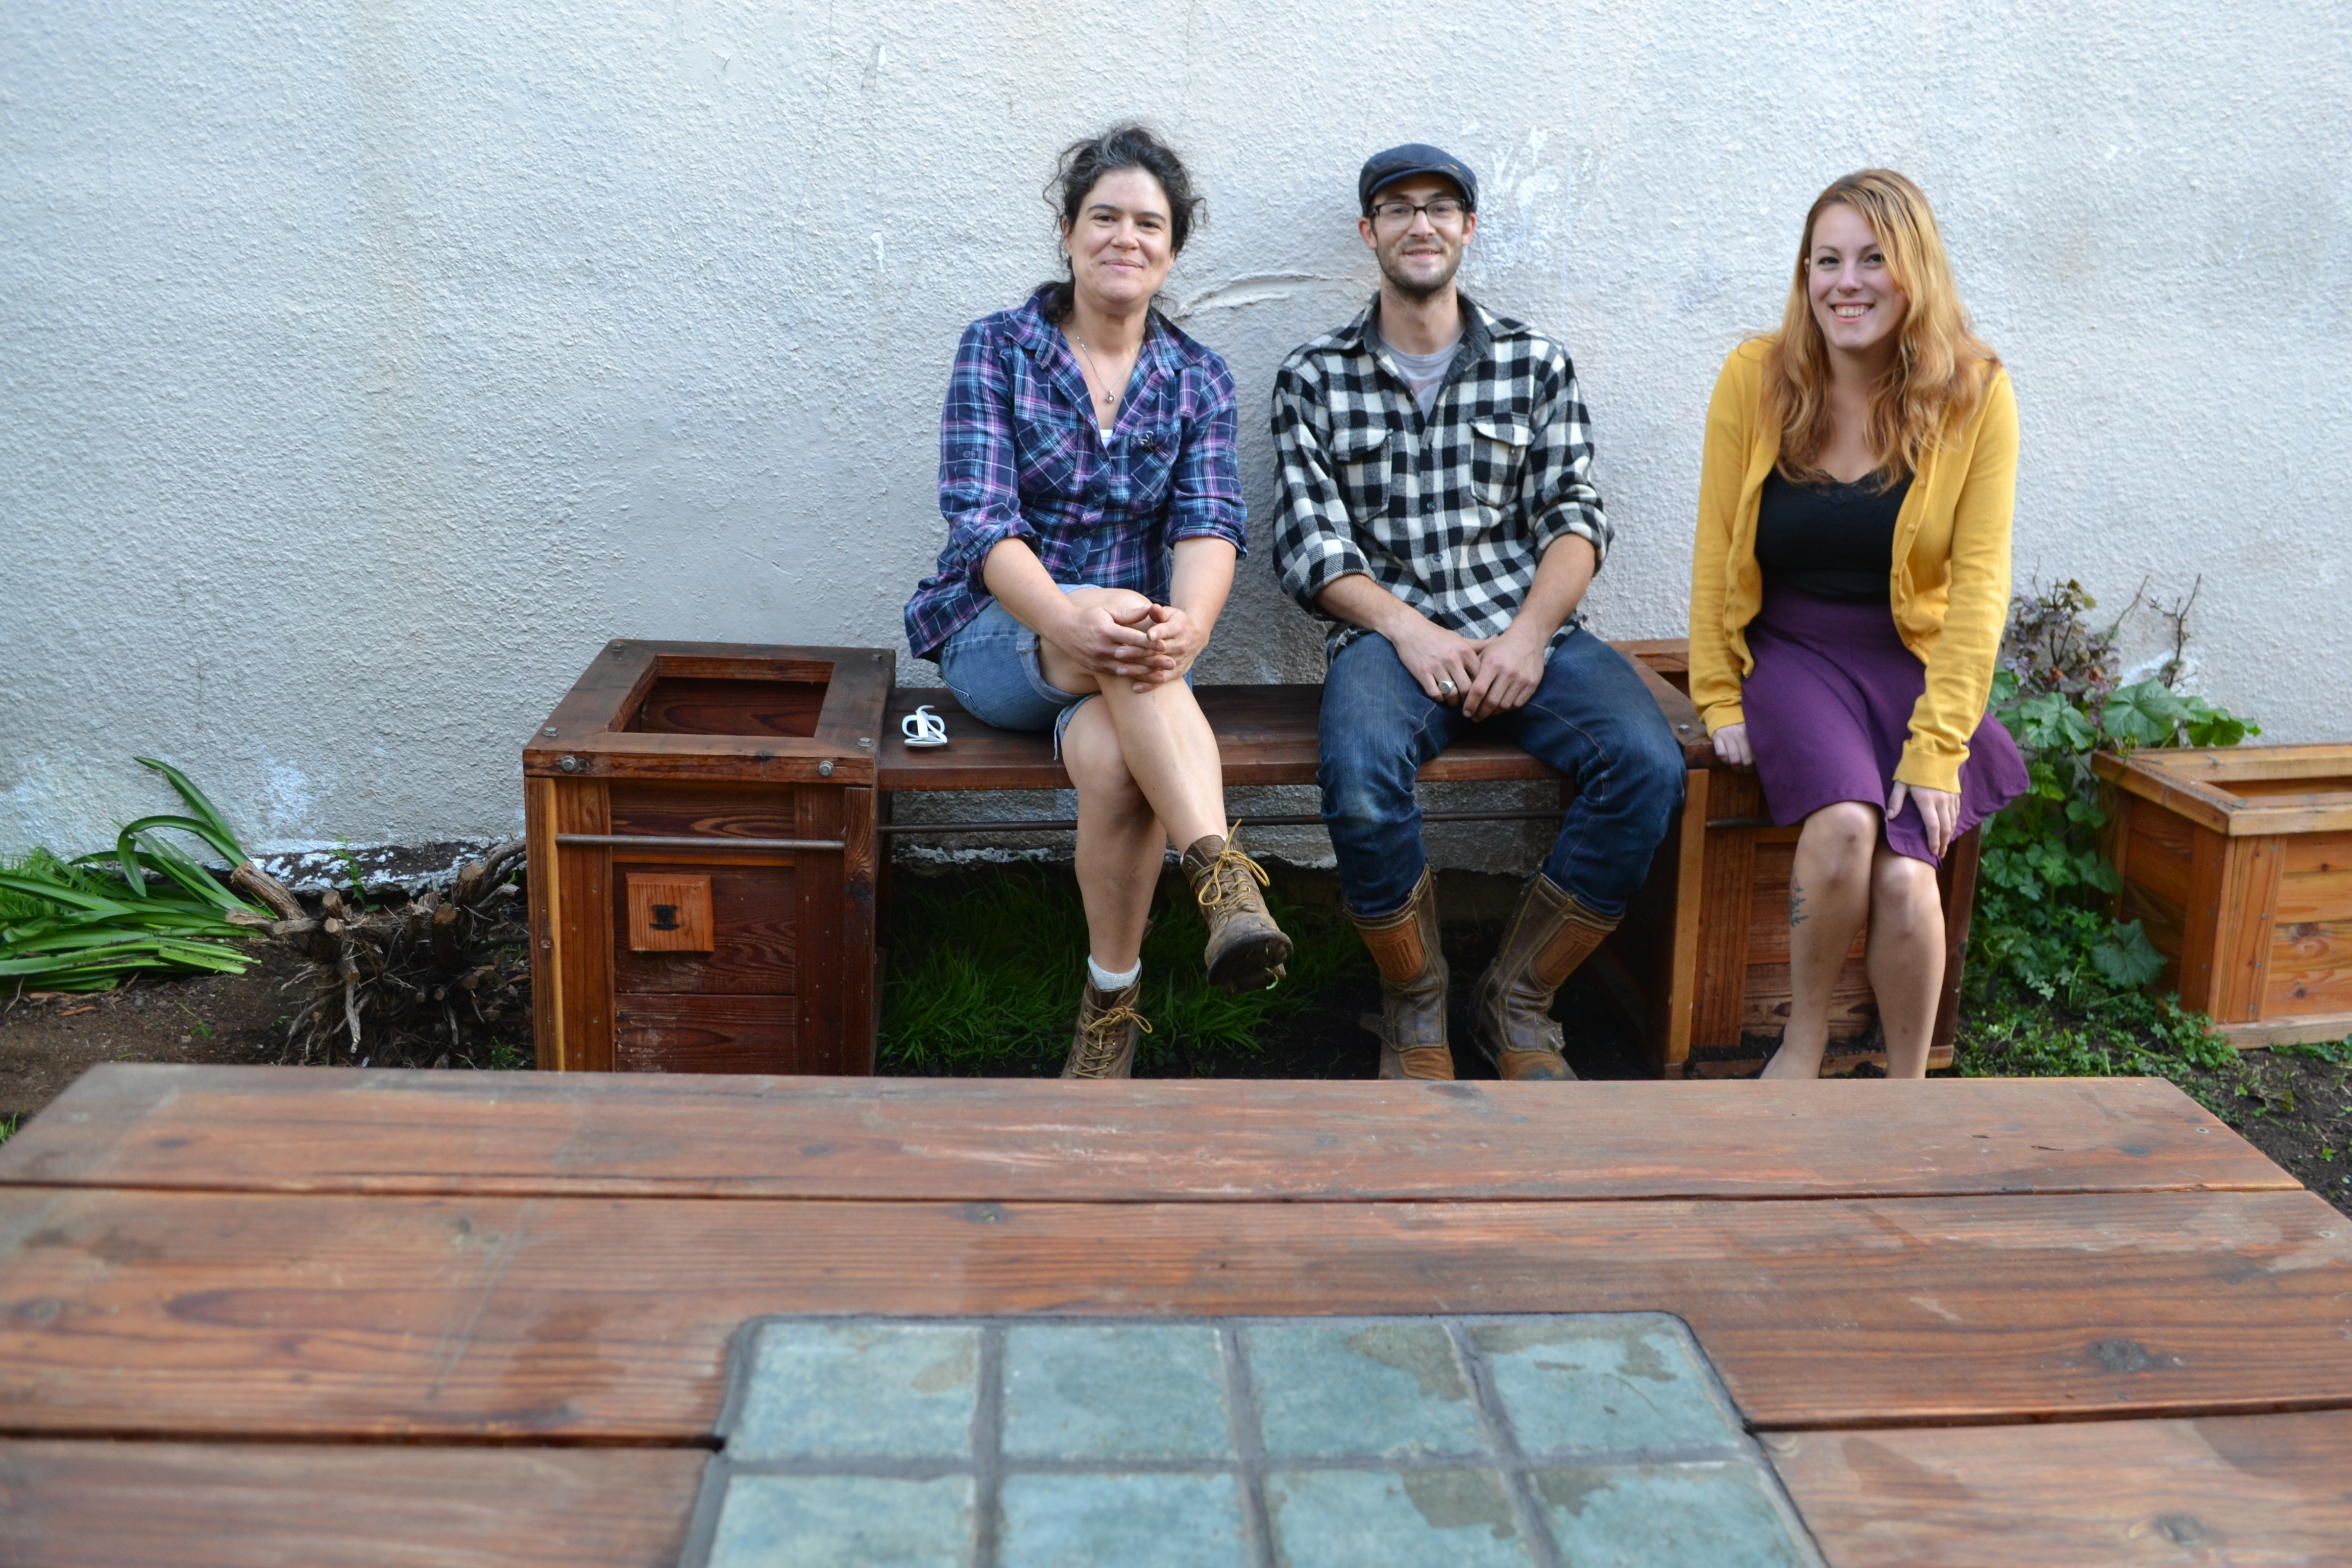 Garden Furniture East Bay jewcology - | start-up moshav: growing our demonstration garden in